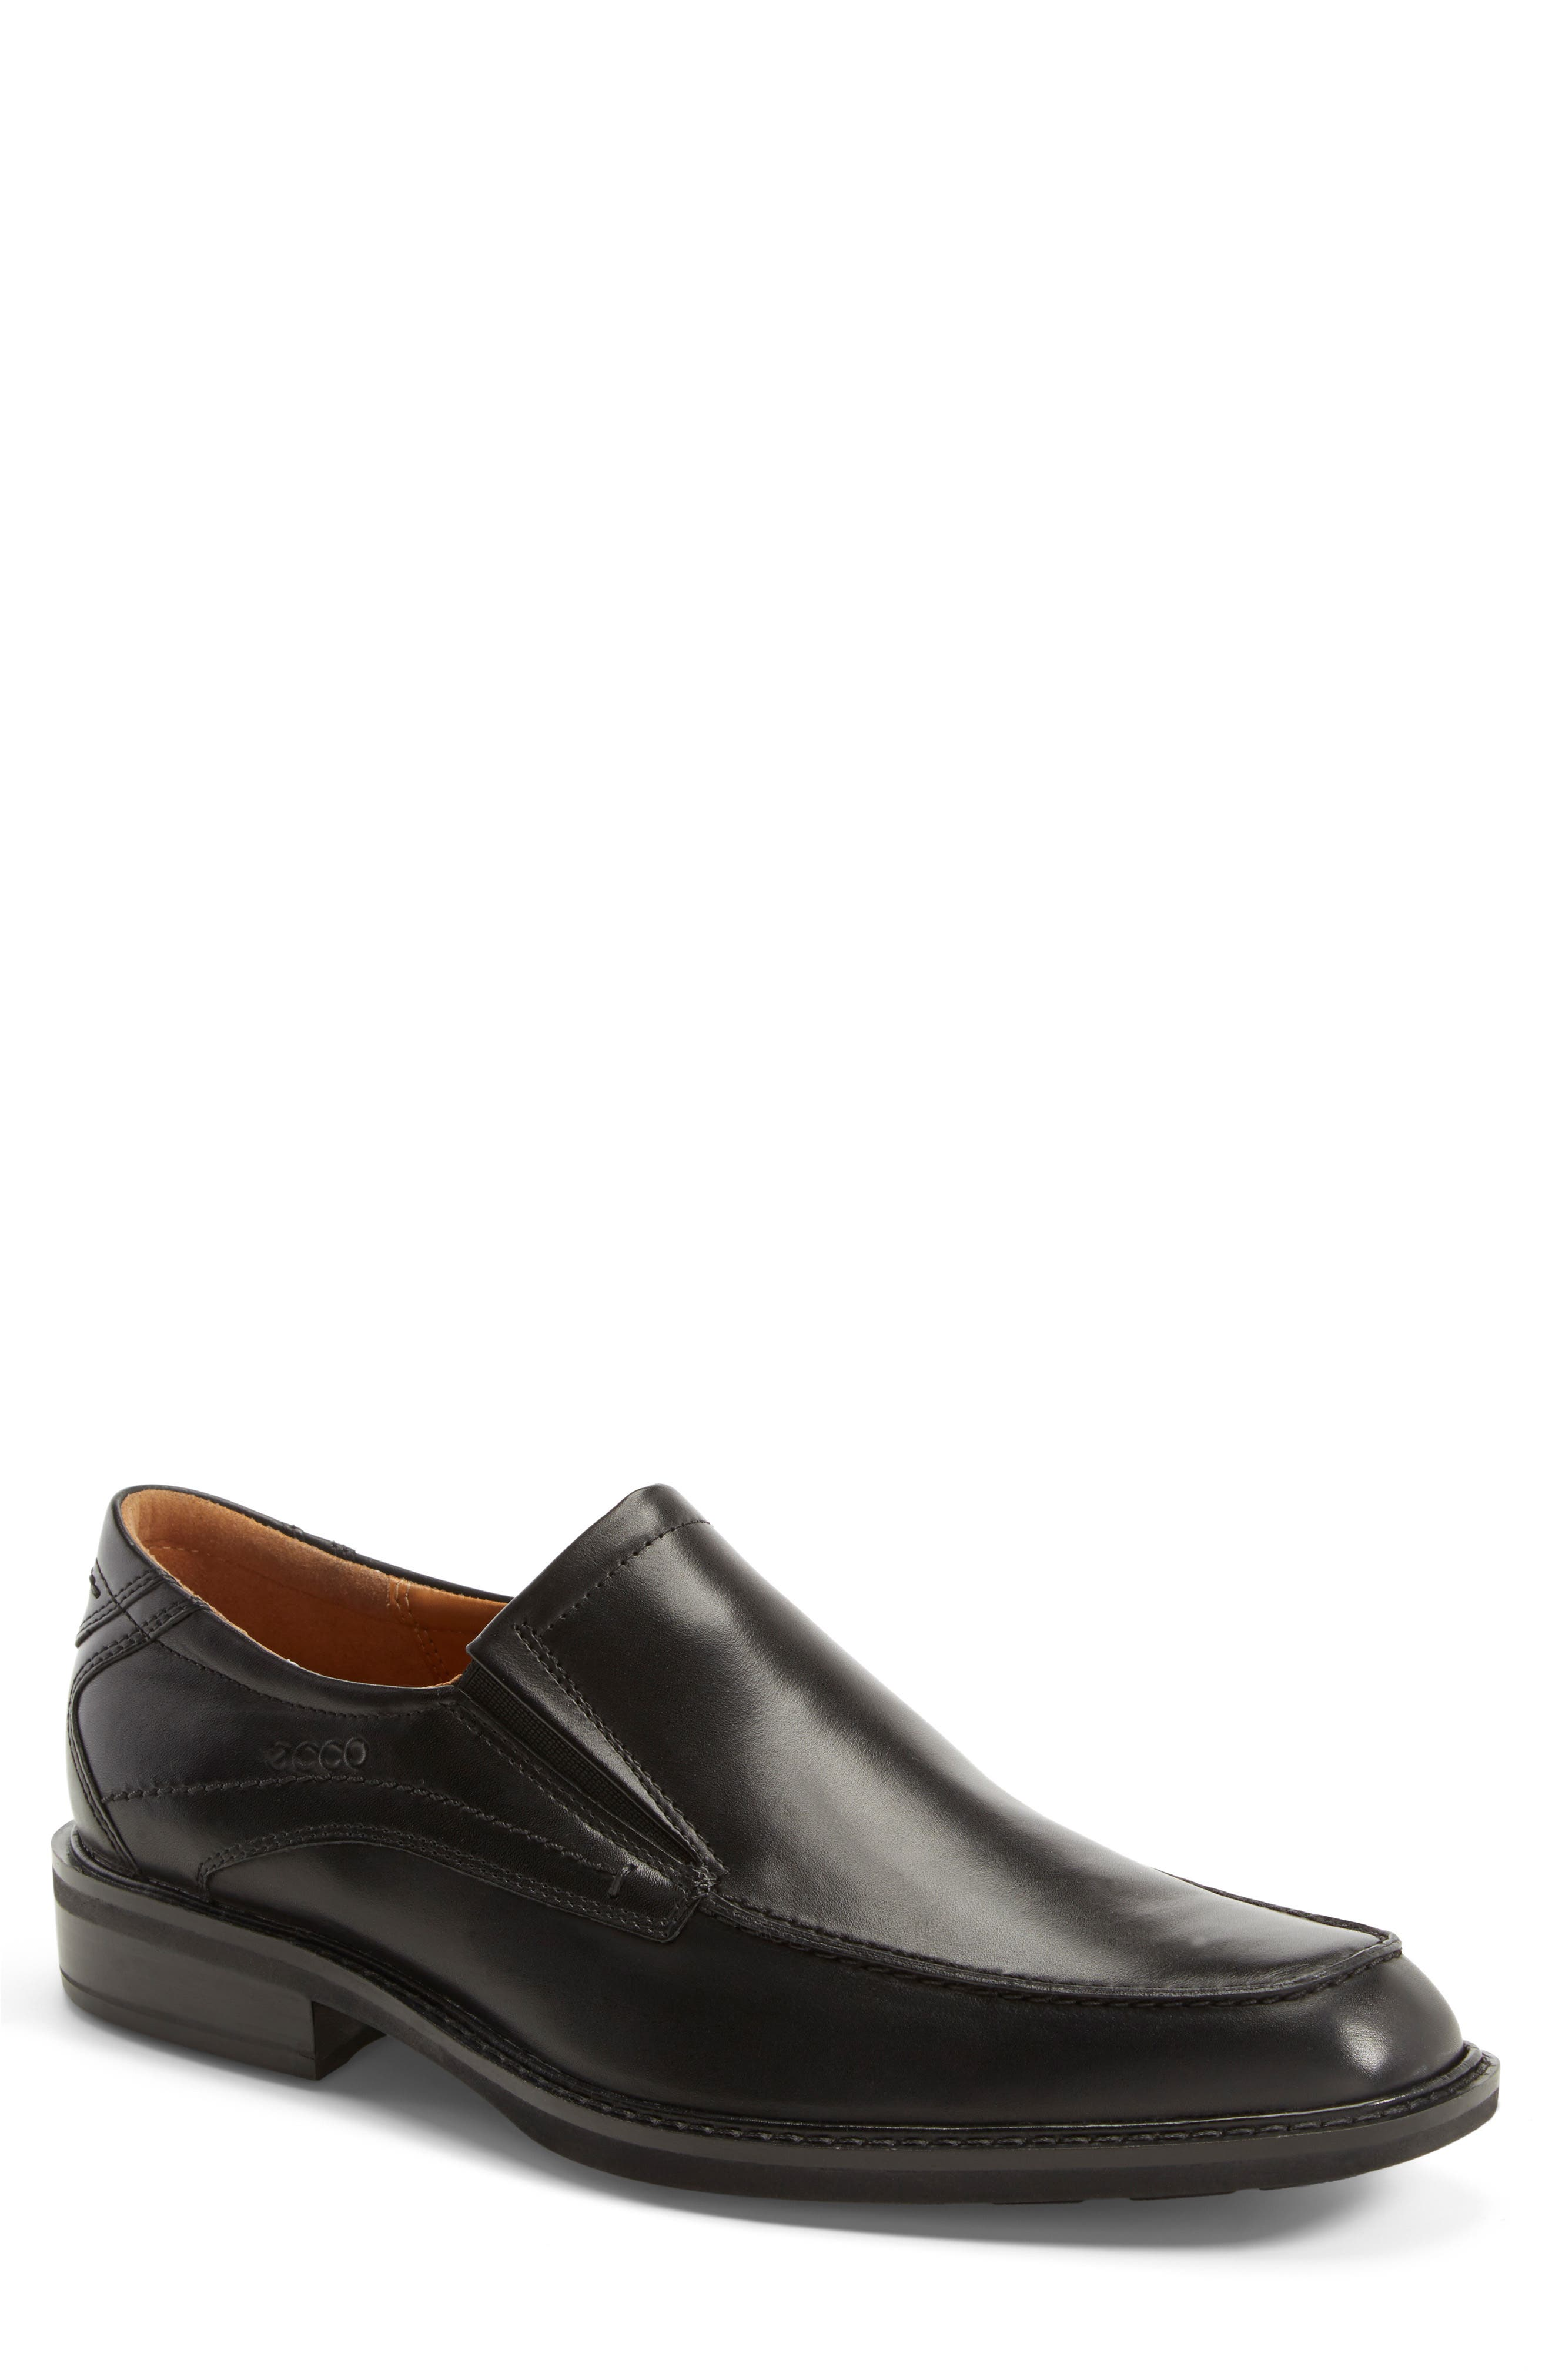 'Windsor' Slip-On,                         Main,                         color, BLACK/BLACK LEATHER